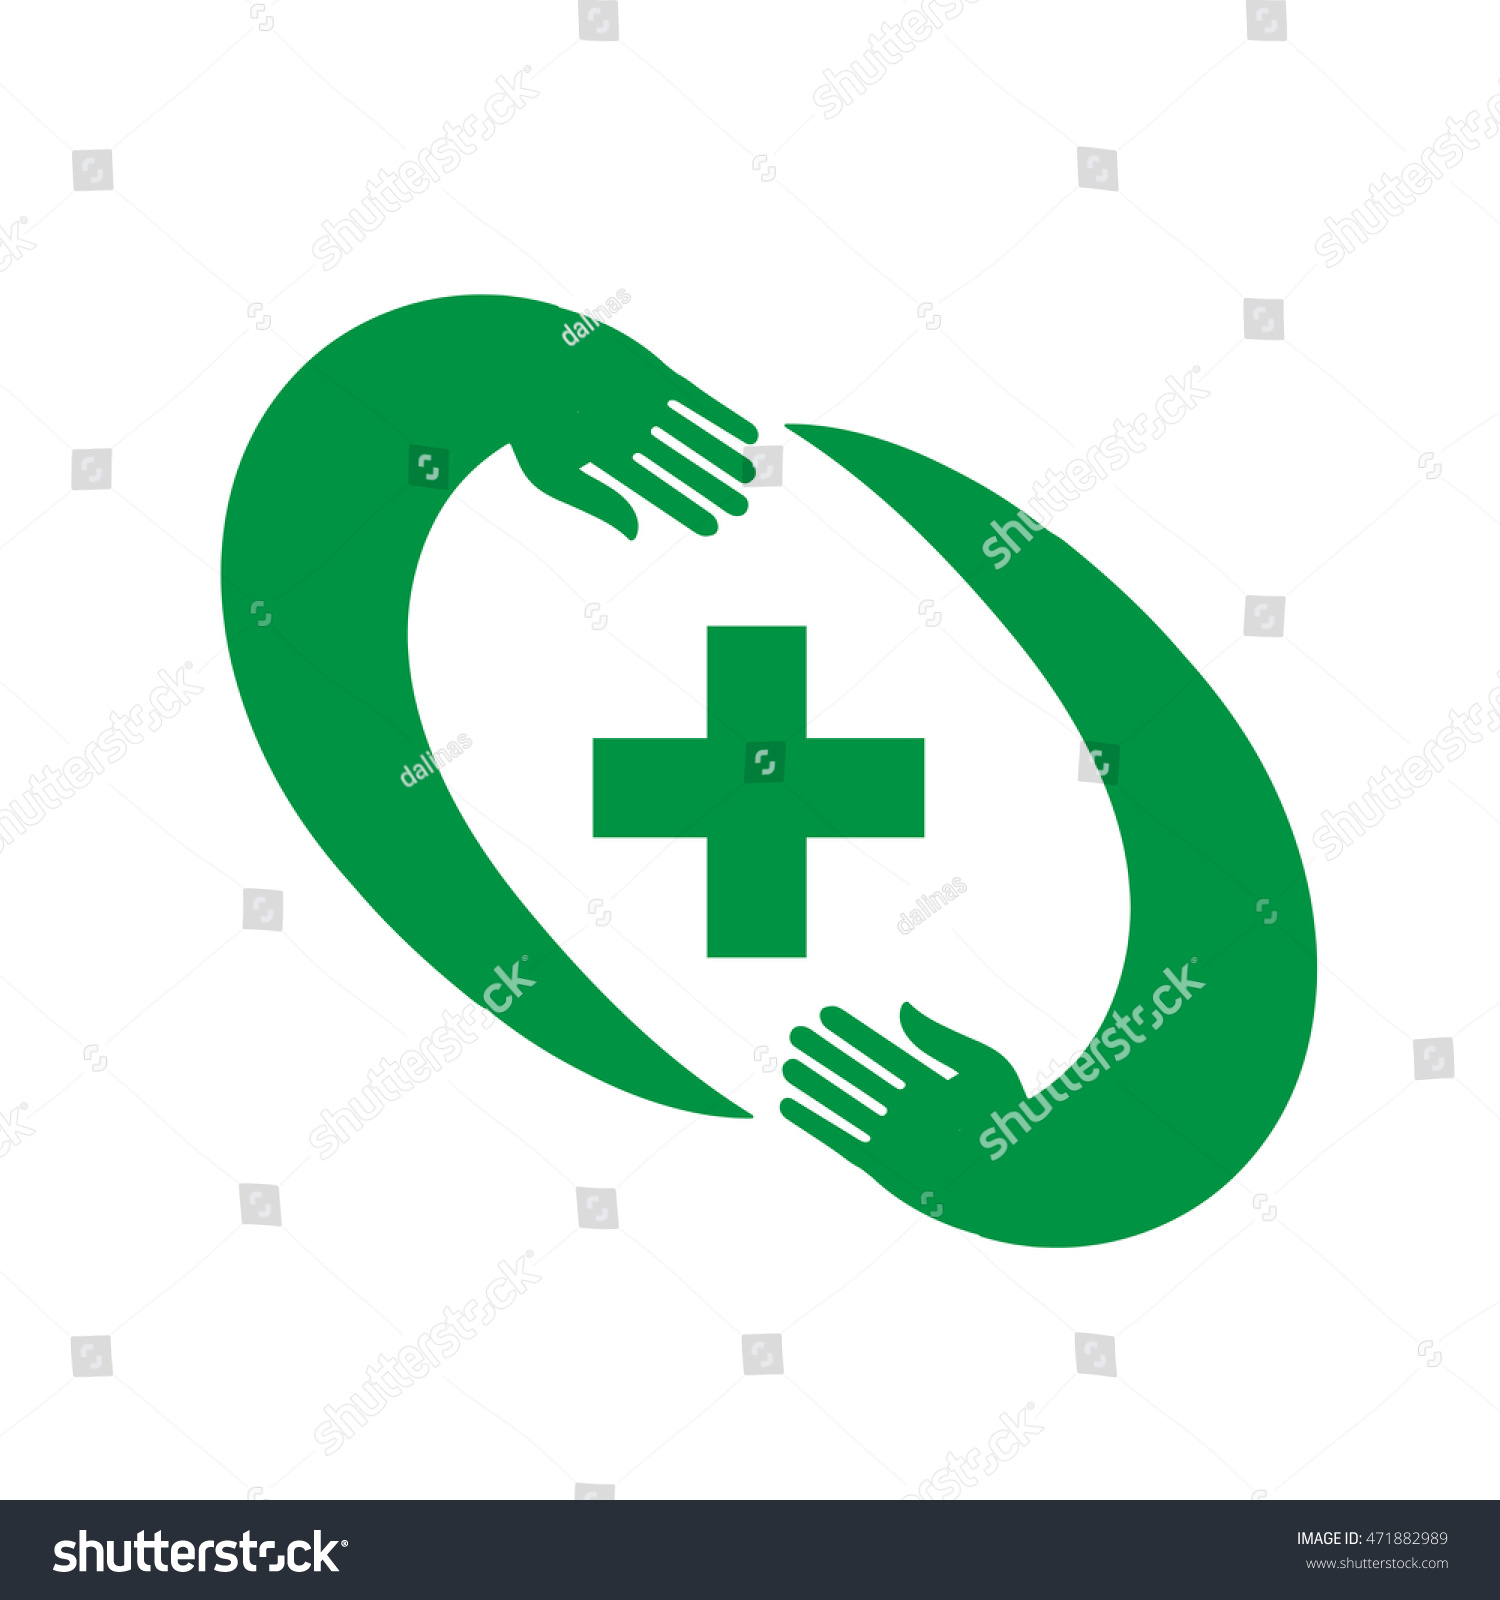 Pharmacy Cross Frame Two Hands Vector Stock Vector (Royalty Free ...